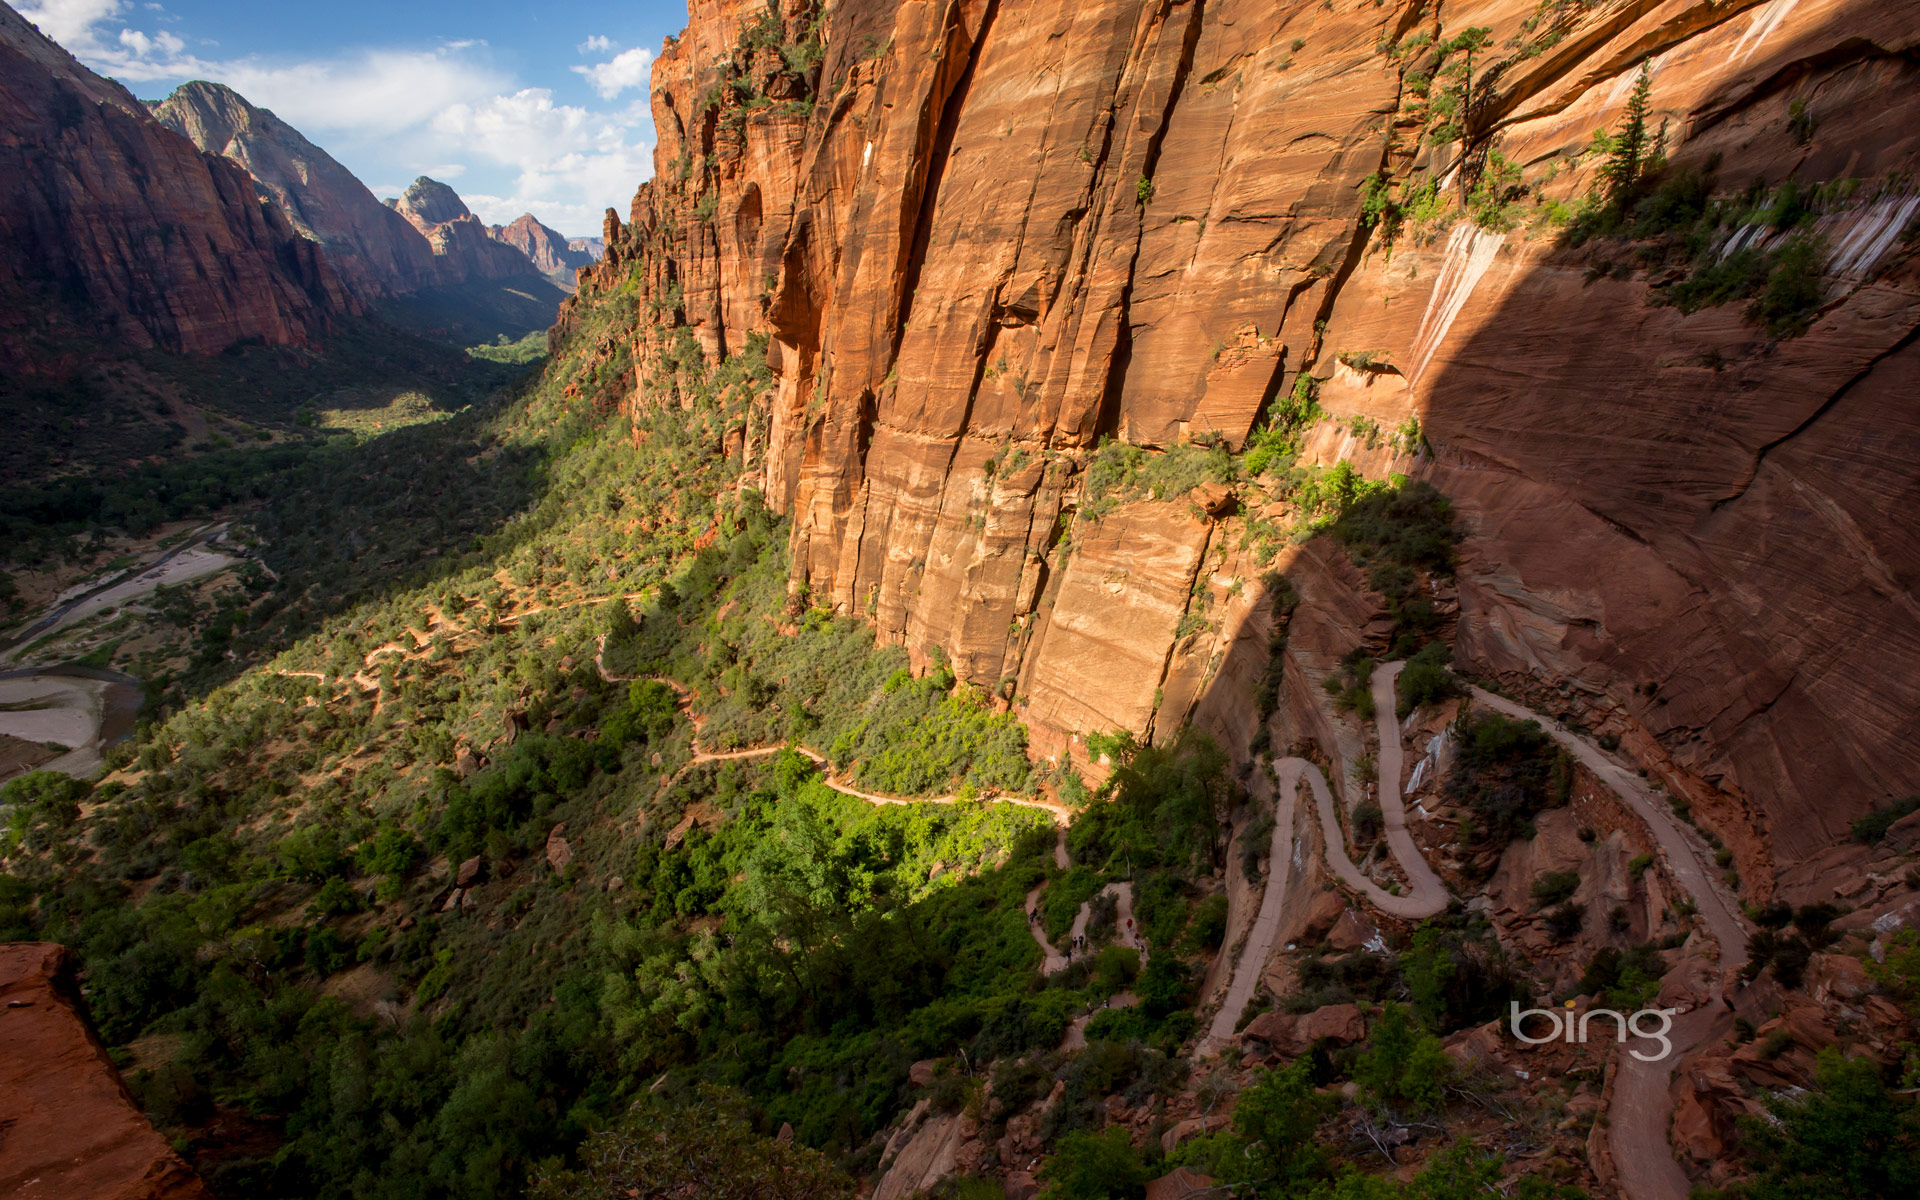 zion national park hd wallpaper wallpapersafari. Black Bedroom Furniture Sets. Home Design Ideas